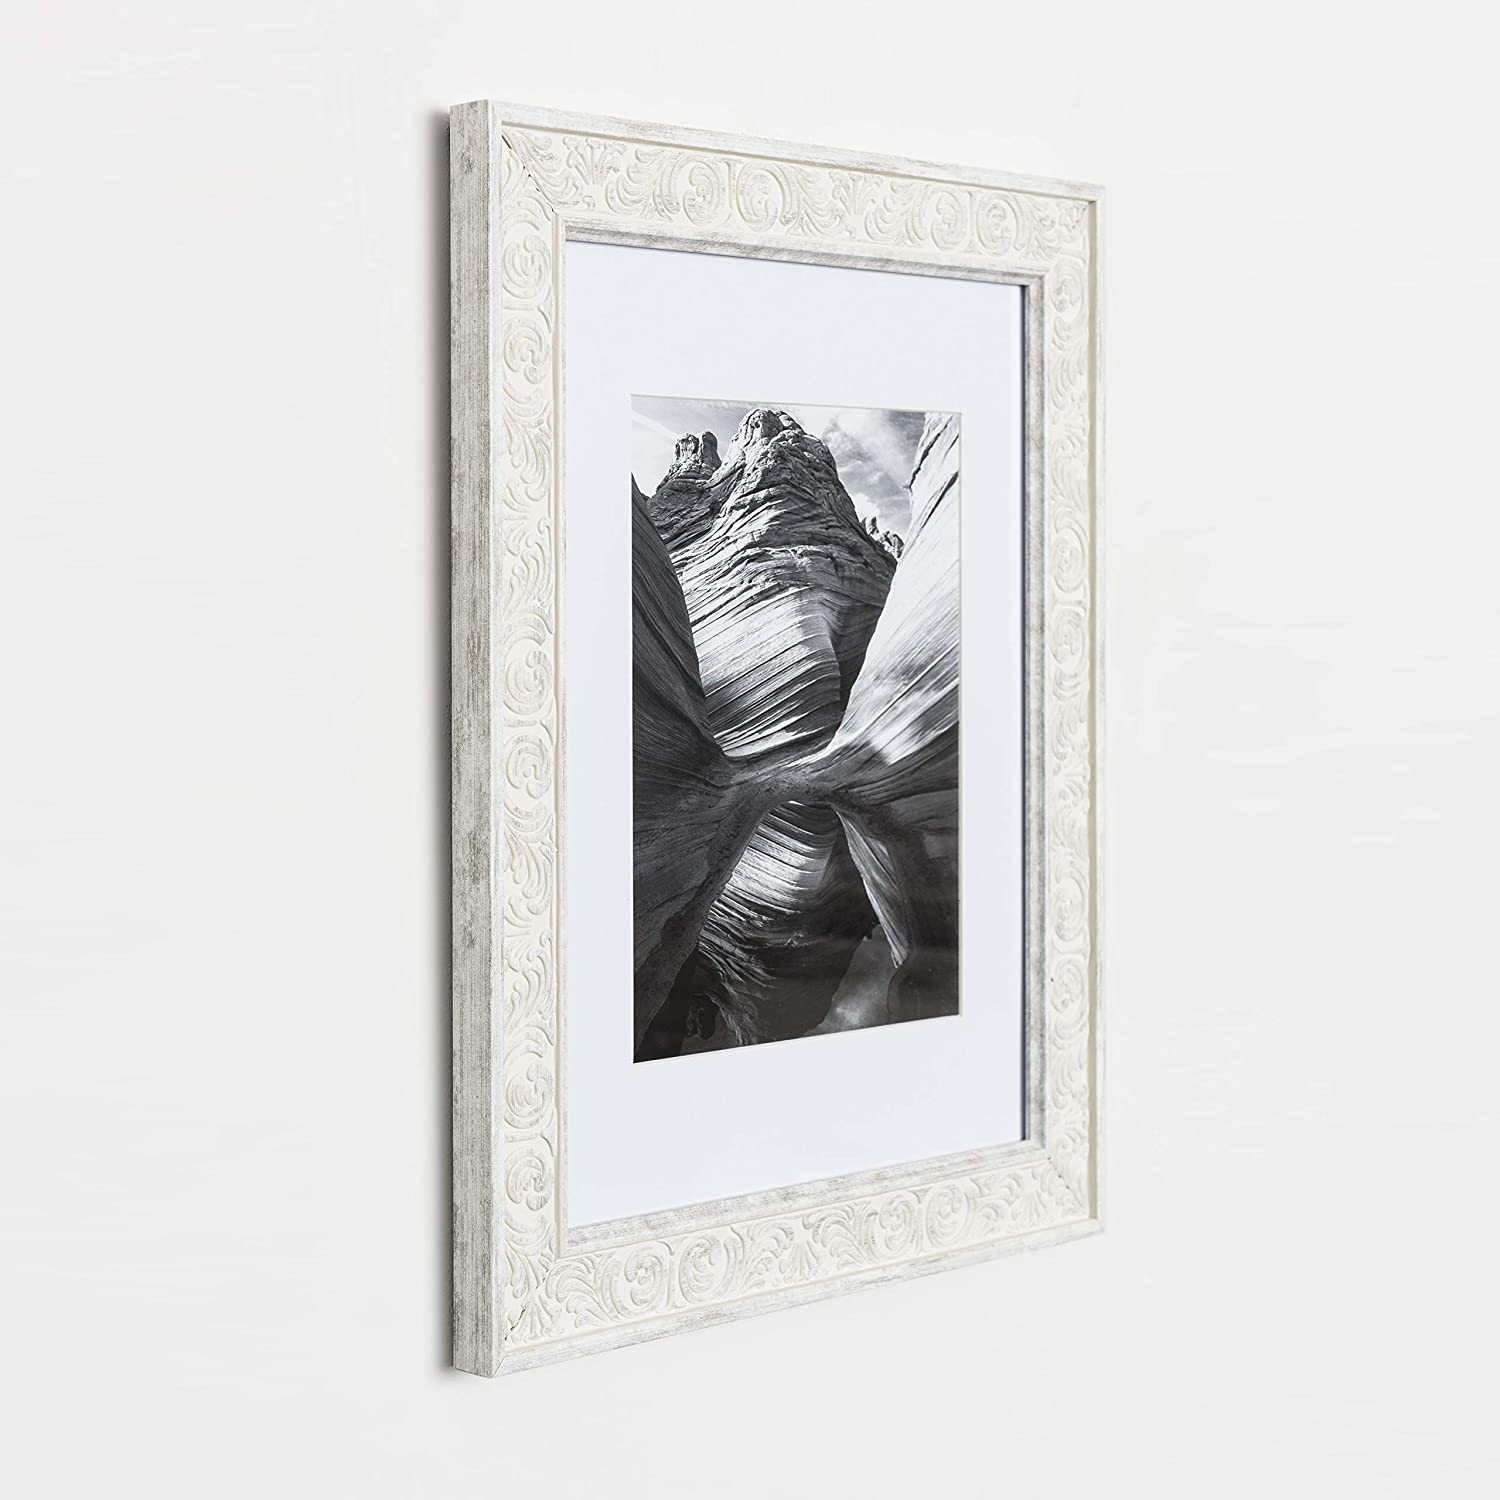 Frames by EcoHome Reclaimed Finish 8x10 Picture Frame White Matted for 5x7